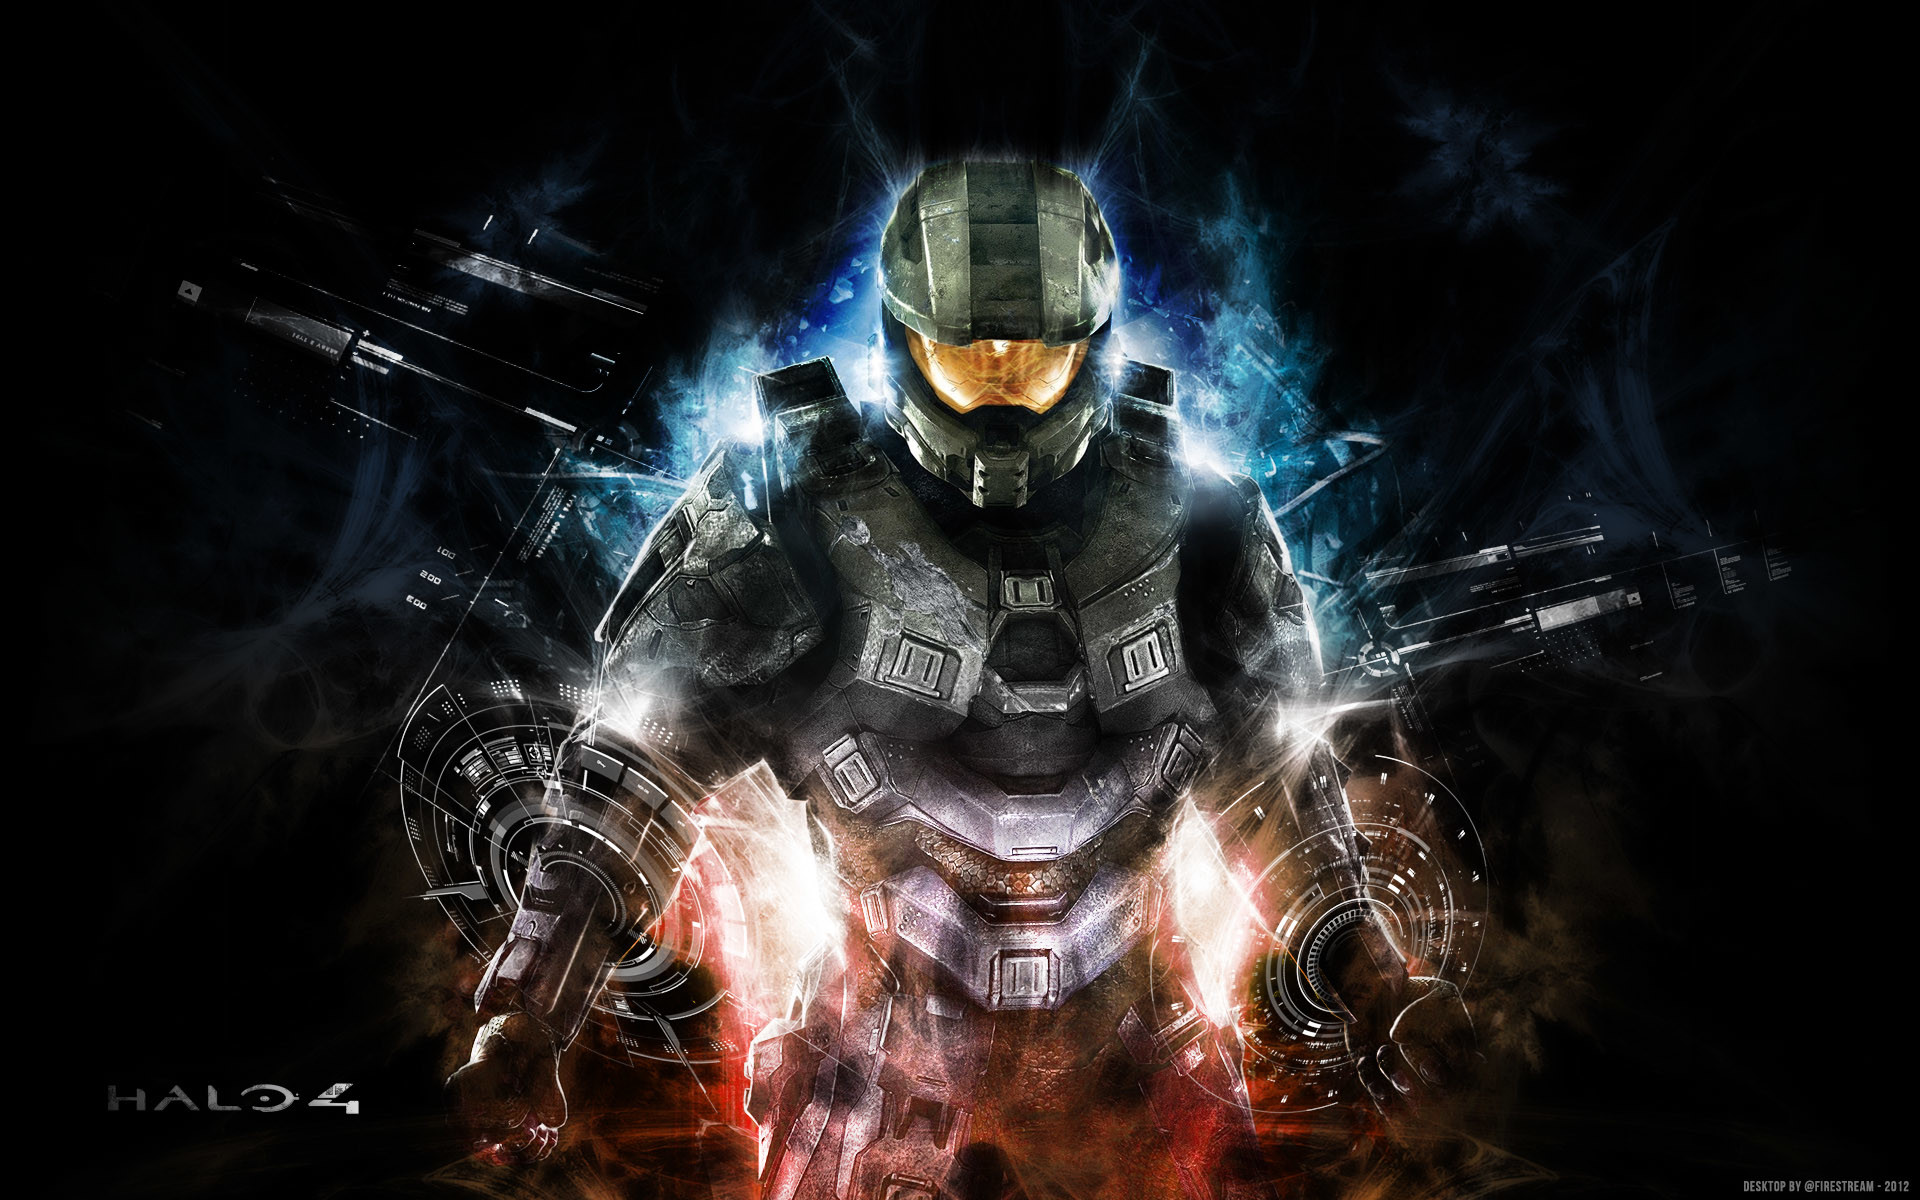 Cool Wallpapers 1920x1200: Cool Halo Wallpapers (64+ Images